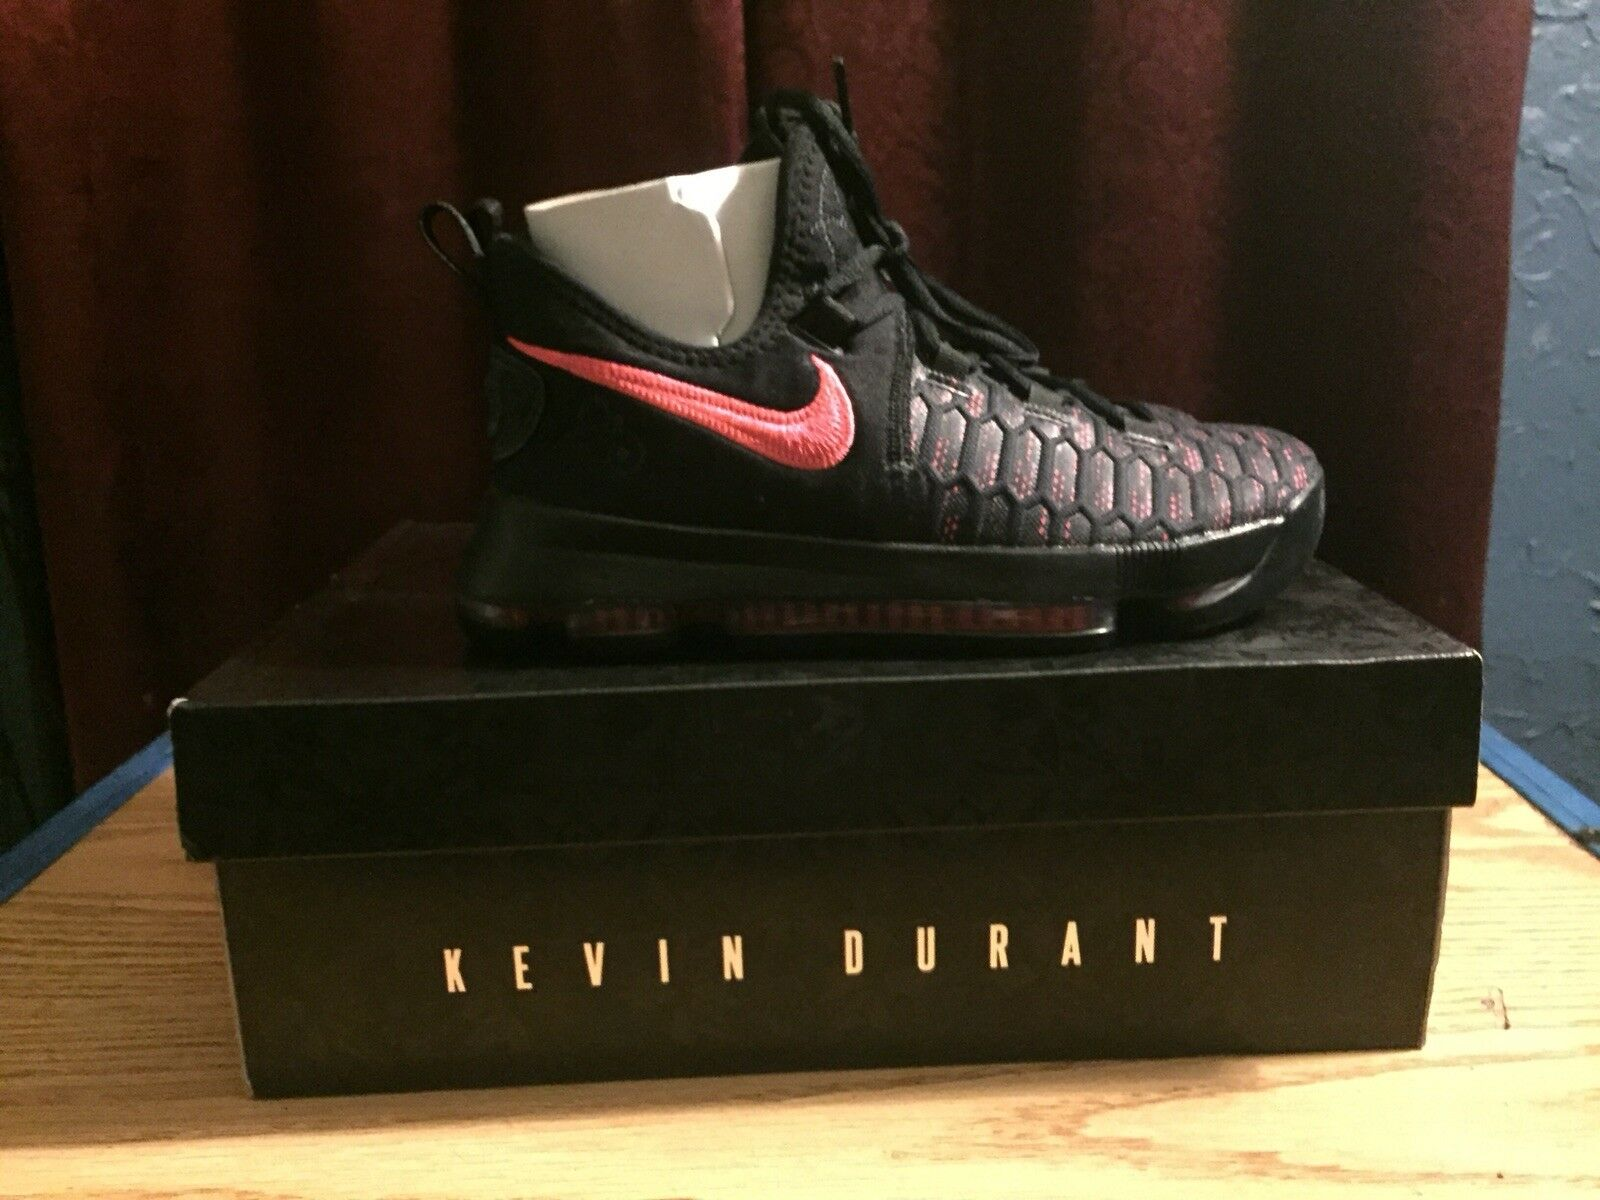 Kevin Durant 9 Size 4.5